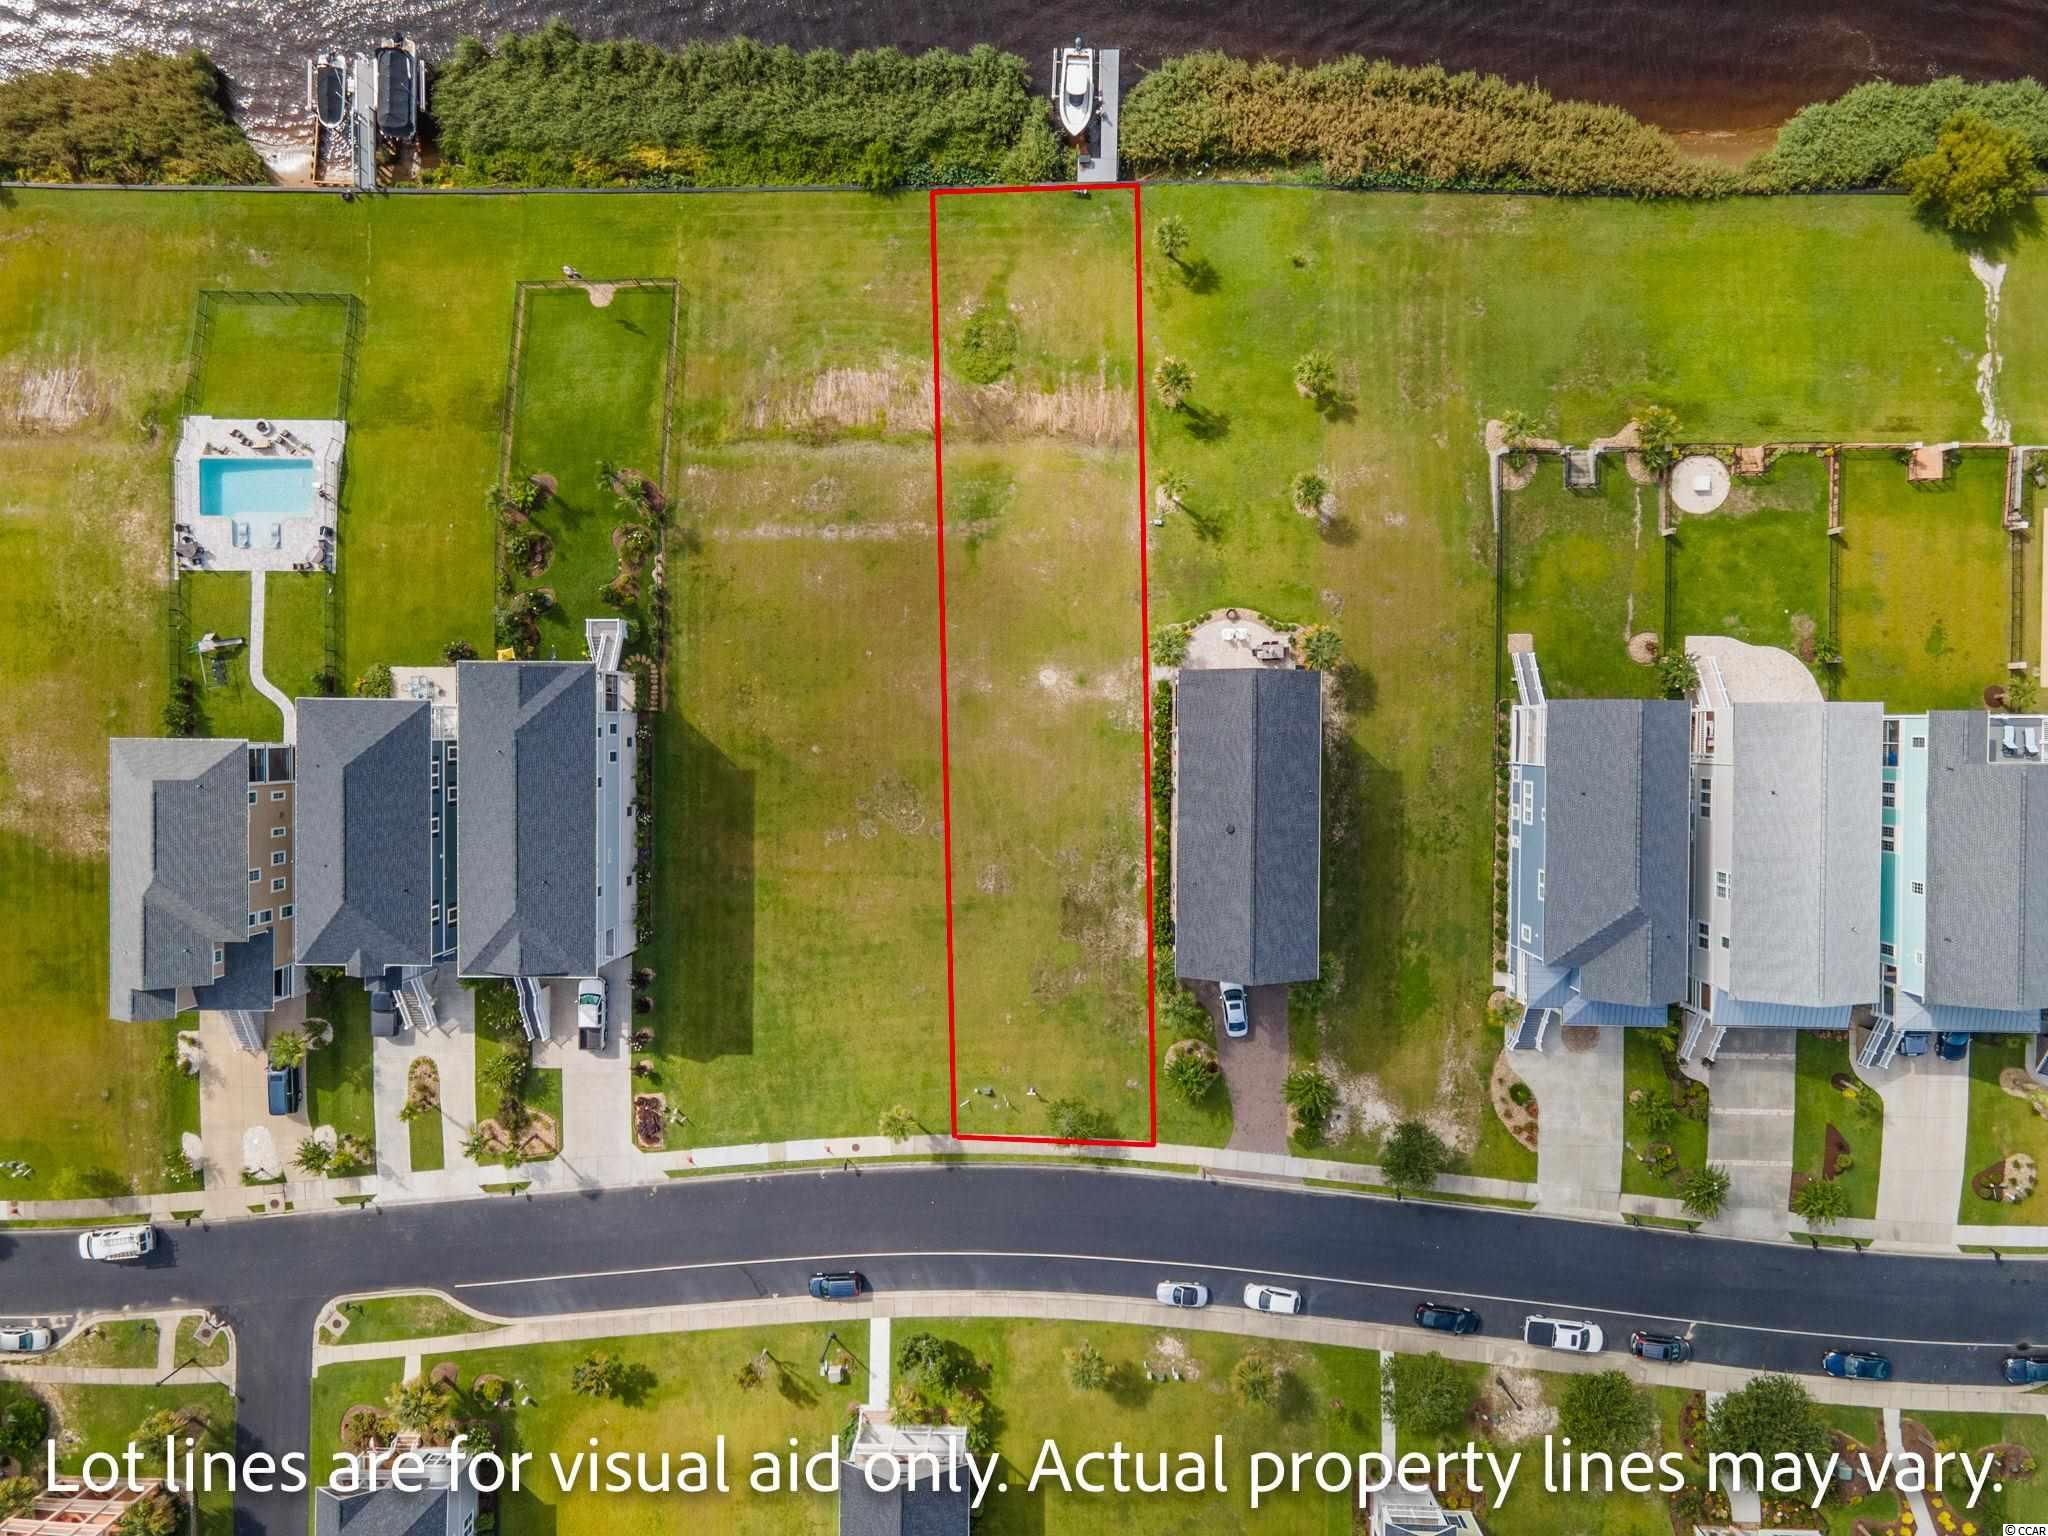 Imagine watching the sun come up off your back porch or watching the boats go by throughout the day.  This direct waterfront lot is in the gated and prestigious ICW community of Waterway Palms Plantation! Come build your dream home with no timeframe to build!  Dock permit also. Waterway Palms Plantation community offers wonderful amenities including a clubhouse, pool, tennis courts, boat launch, boat storage, 14-acre lake, playground and more! Conveniently located near schools, shopping, dining, entertainment, golfing, area attractions and just a few miles away from the beautiful Atlantic beach!   Don't hesitate!!! Very few waterway lots remain.